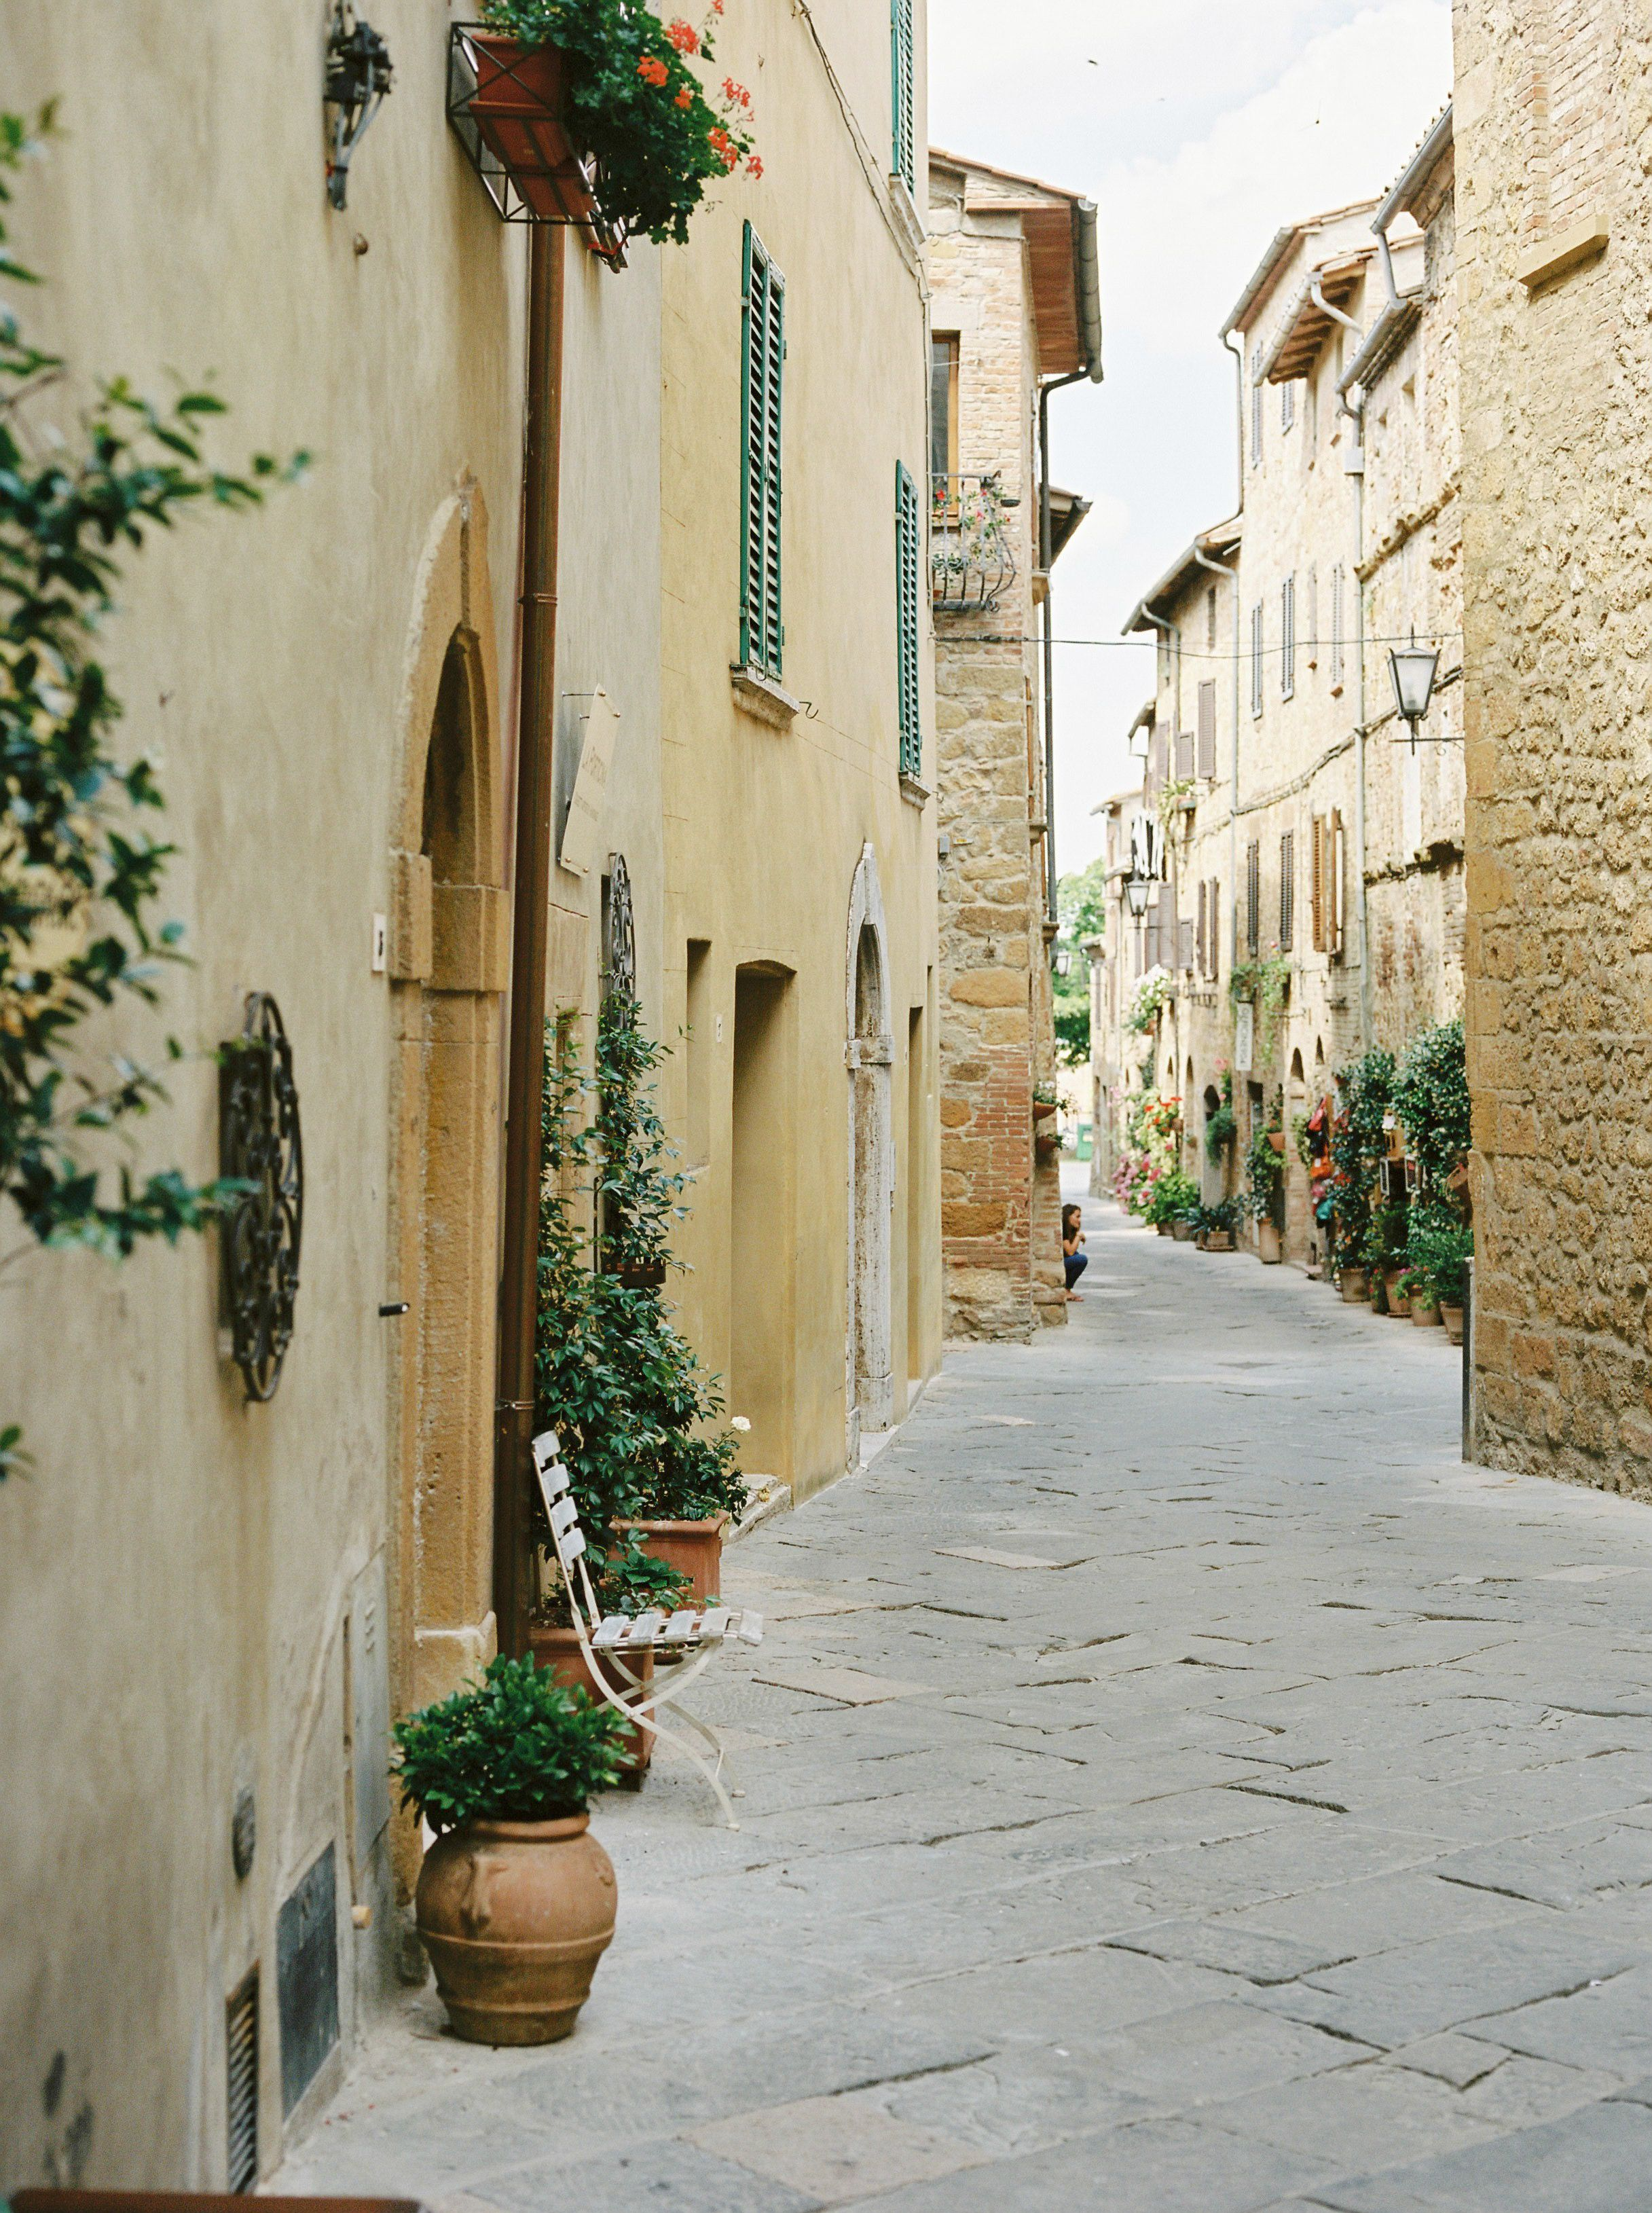 Streets of Pienza. film photography by rosiereports.com